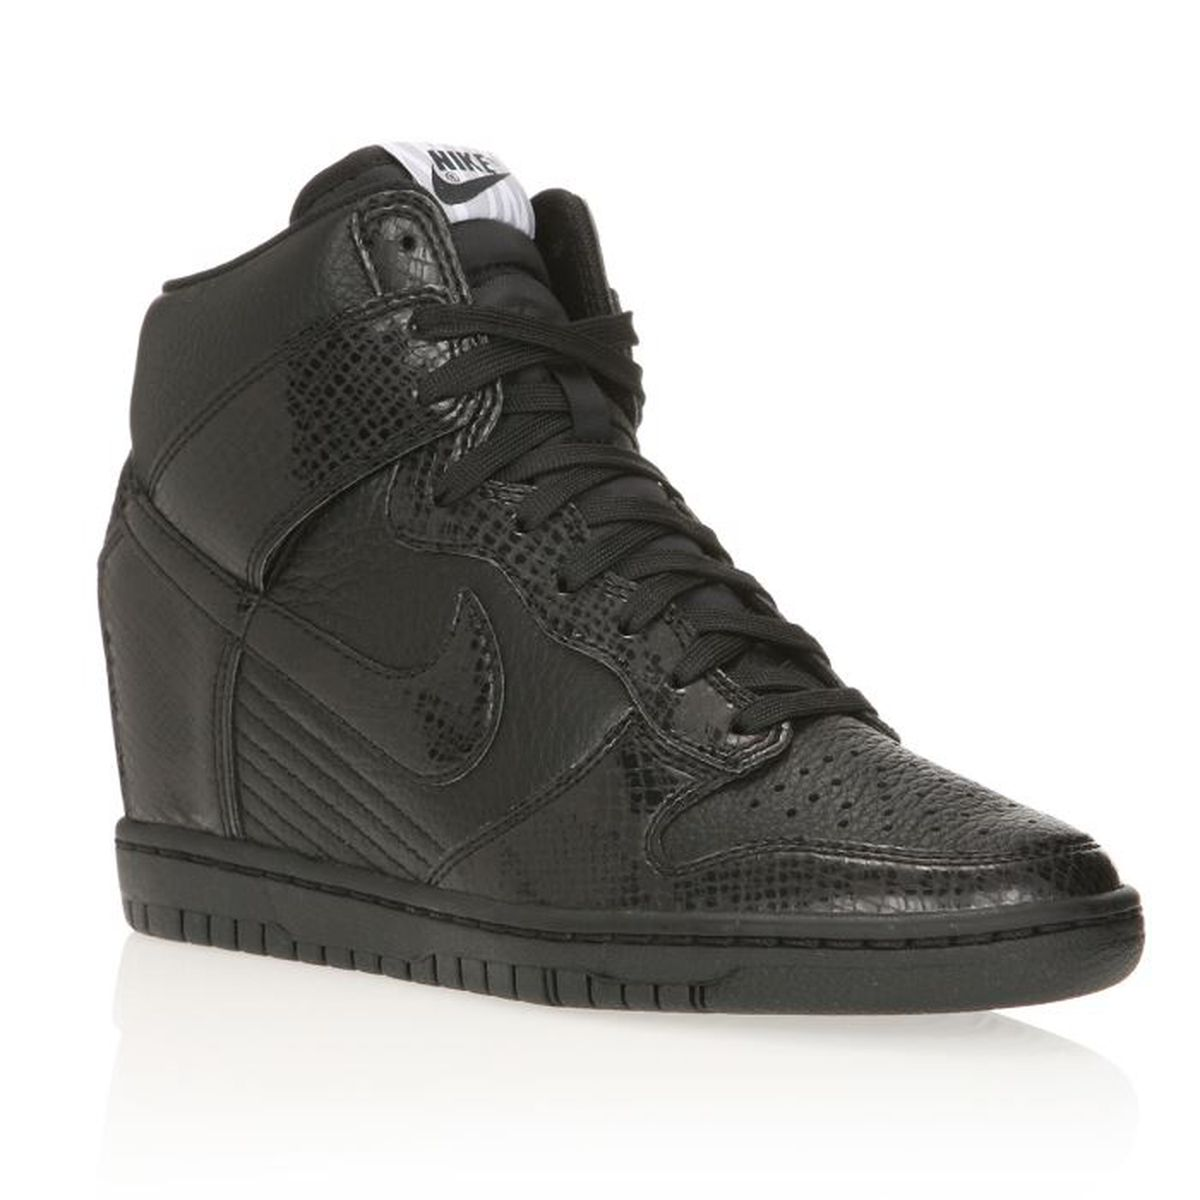 nike baskets wmns dunk sky hi femme femme noir achat vente nike baskets wmns dunk sky hi. Black Bedroom Furniture Sets. Home Design Ideas